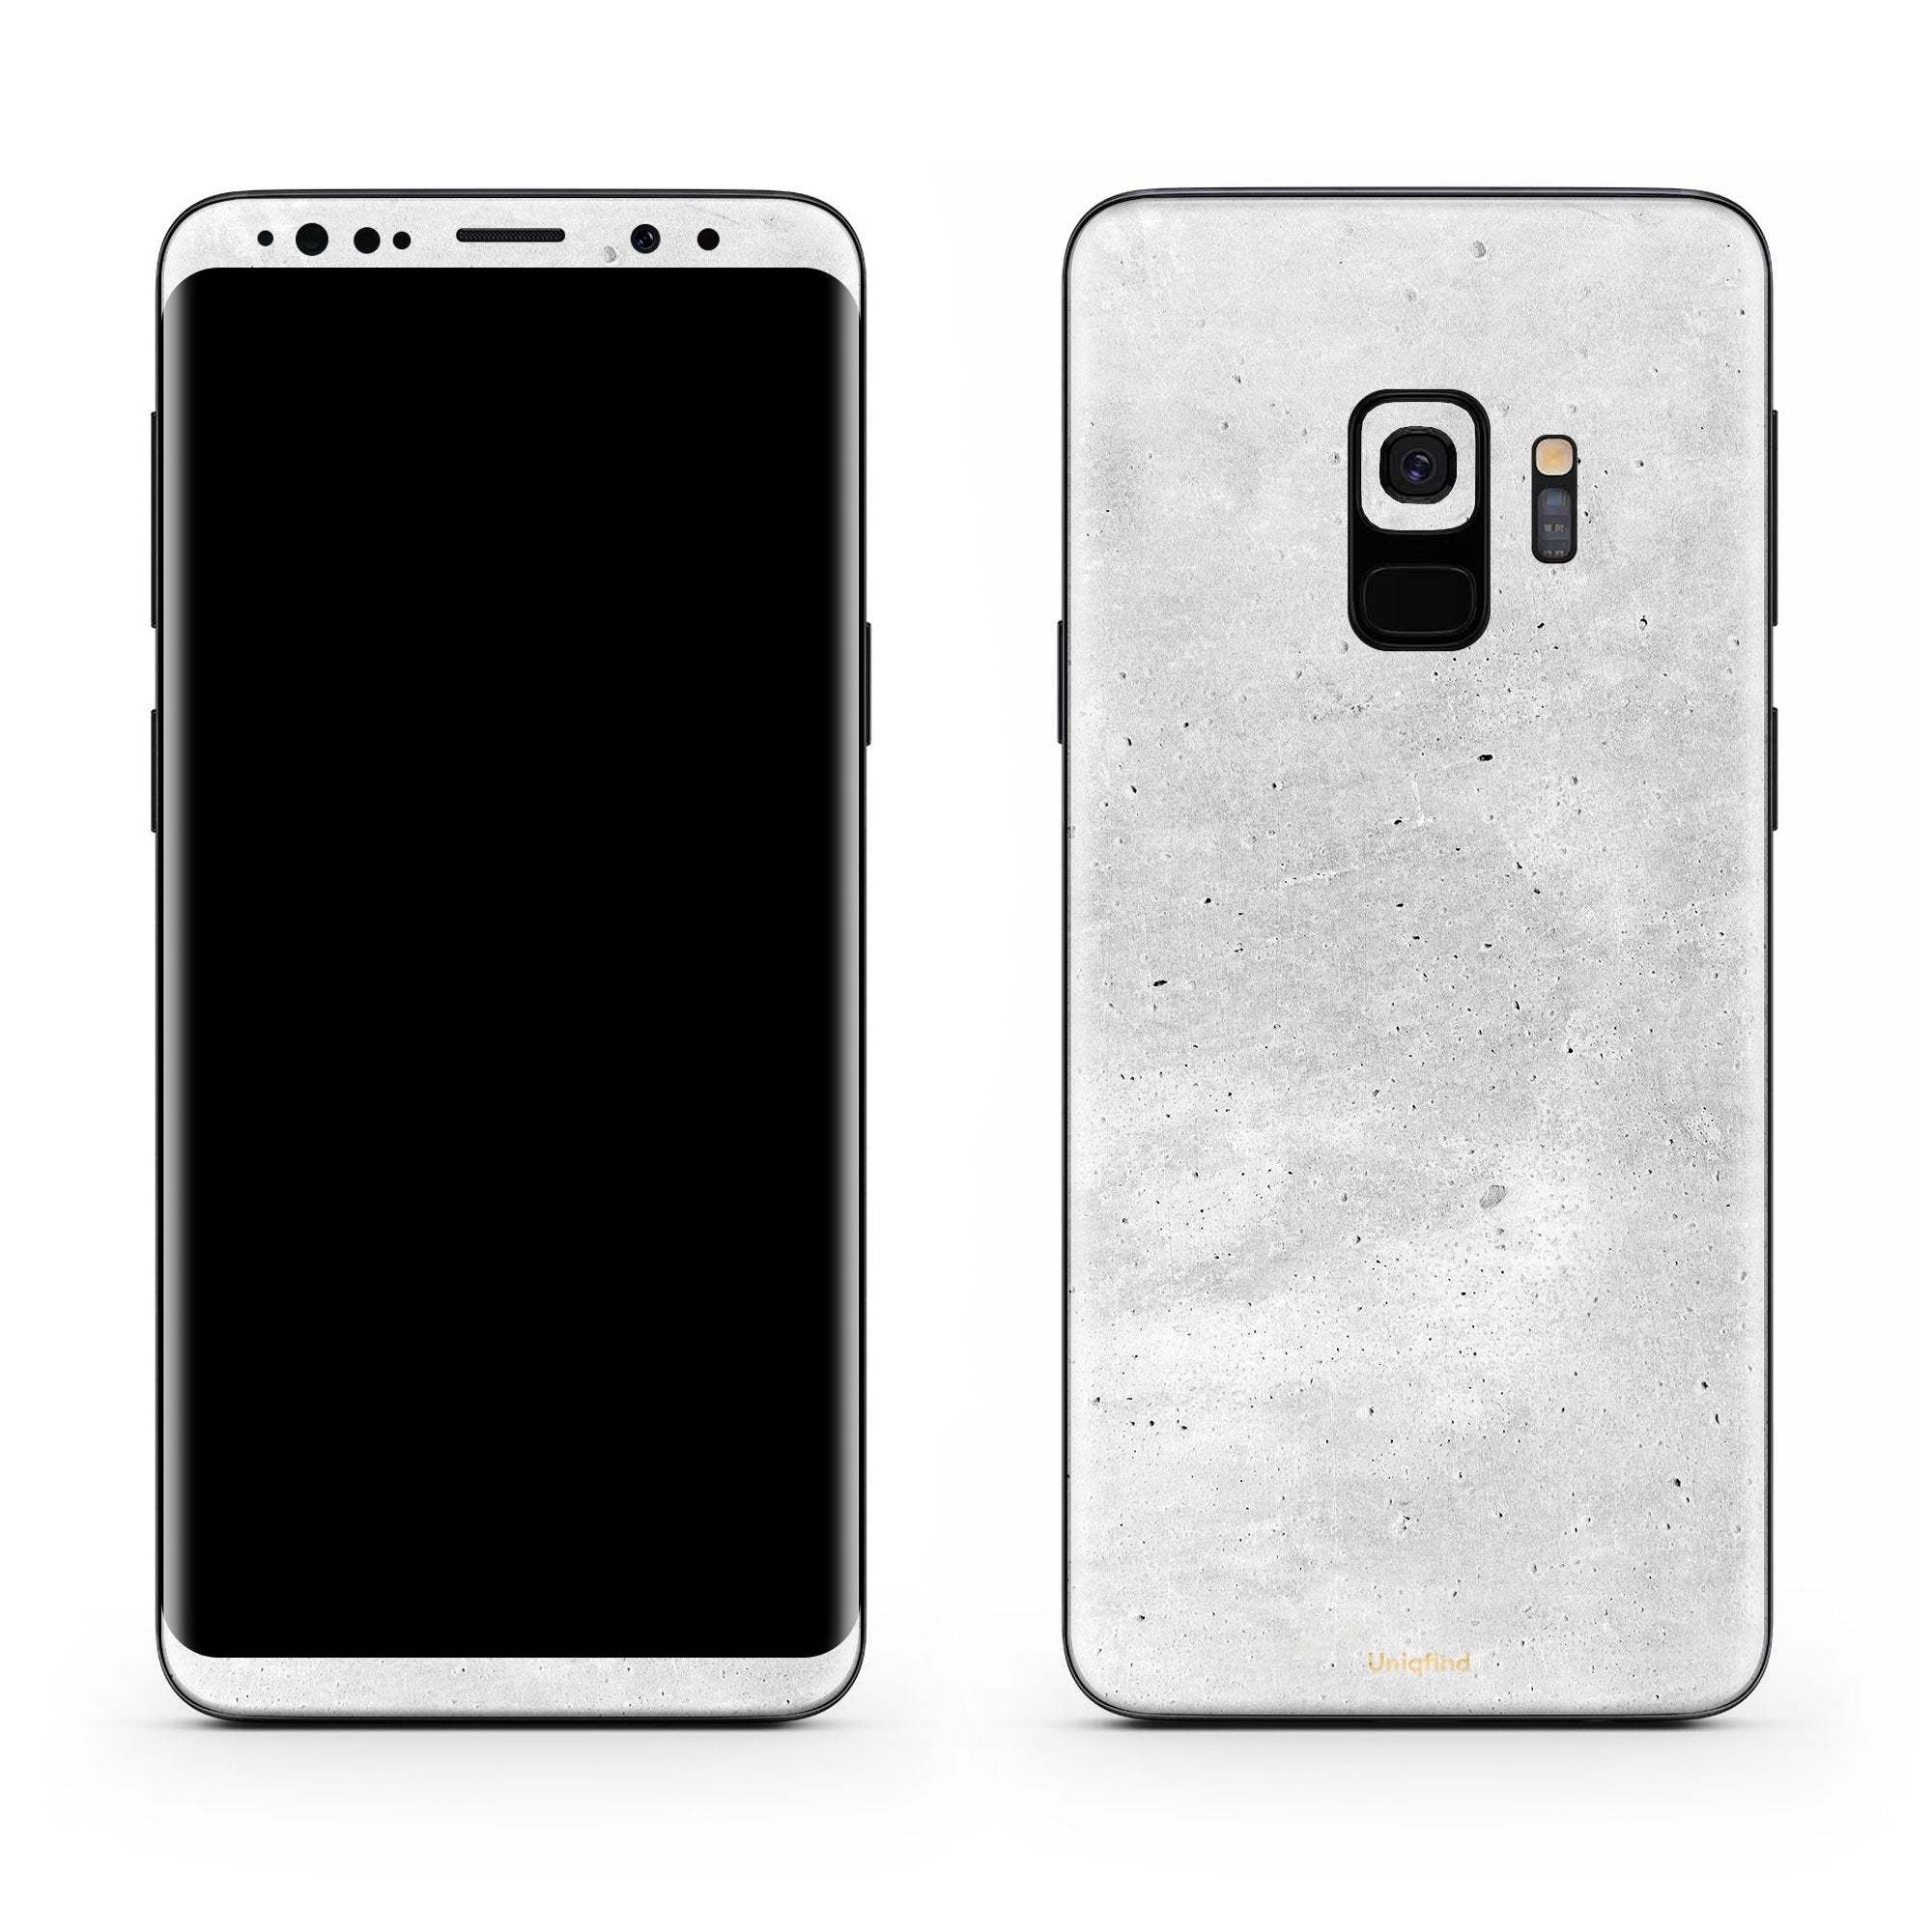 Concrete Galaxy S9 Skin + Case